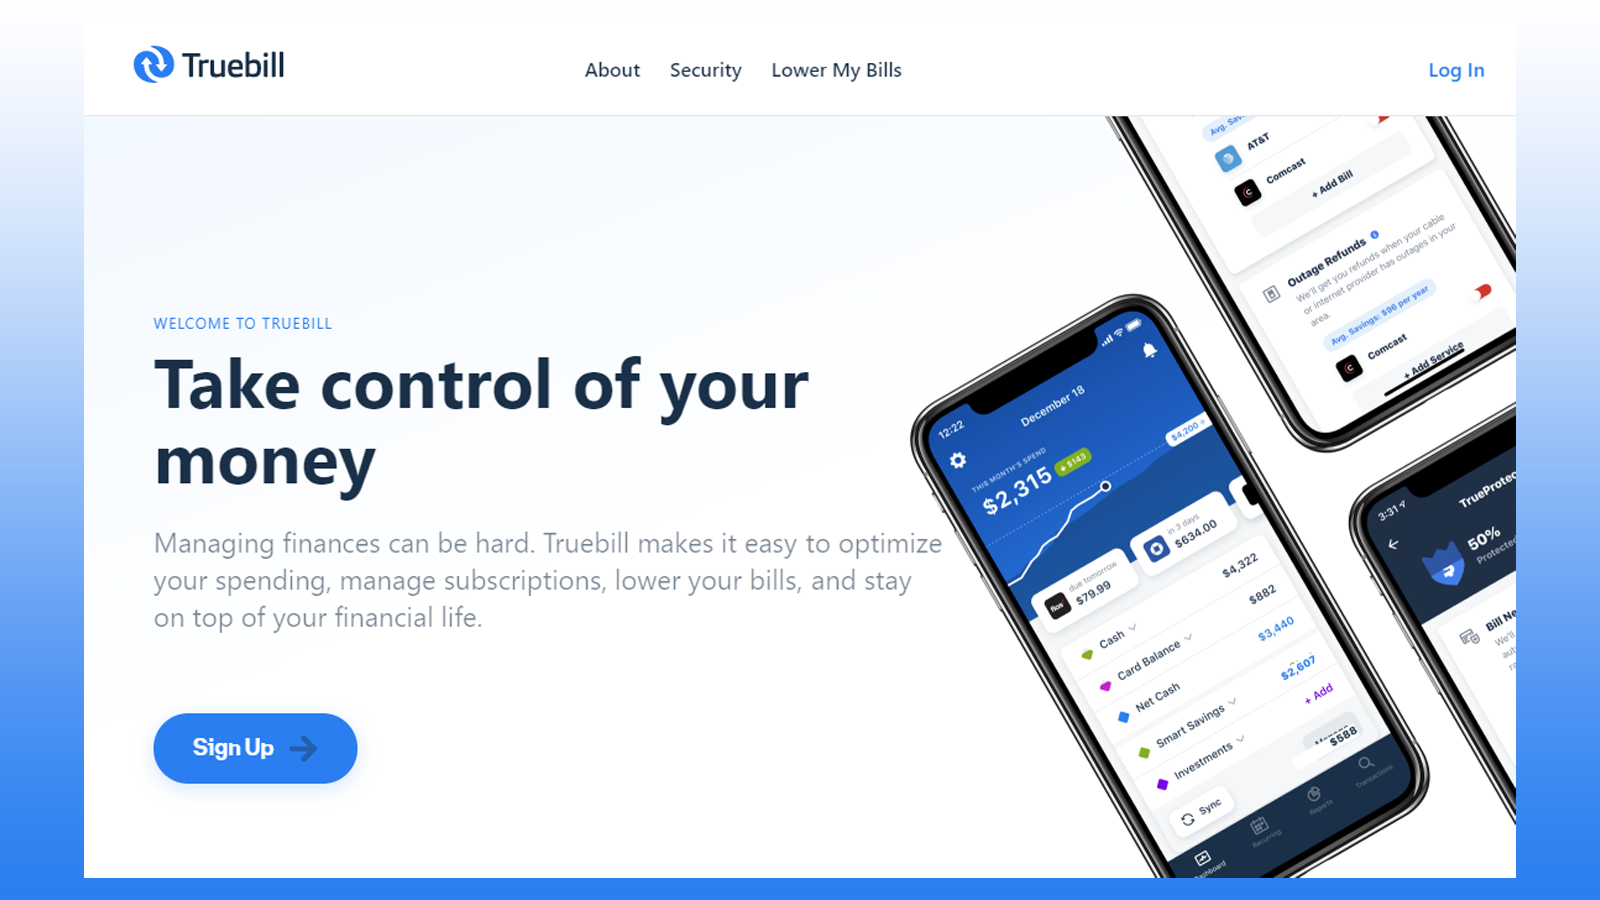 Truebill homepage, with photos of the app's features